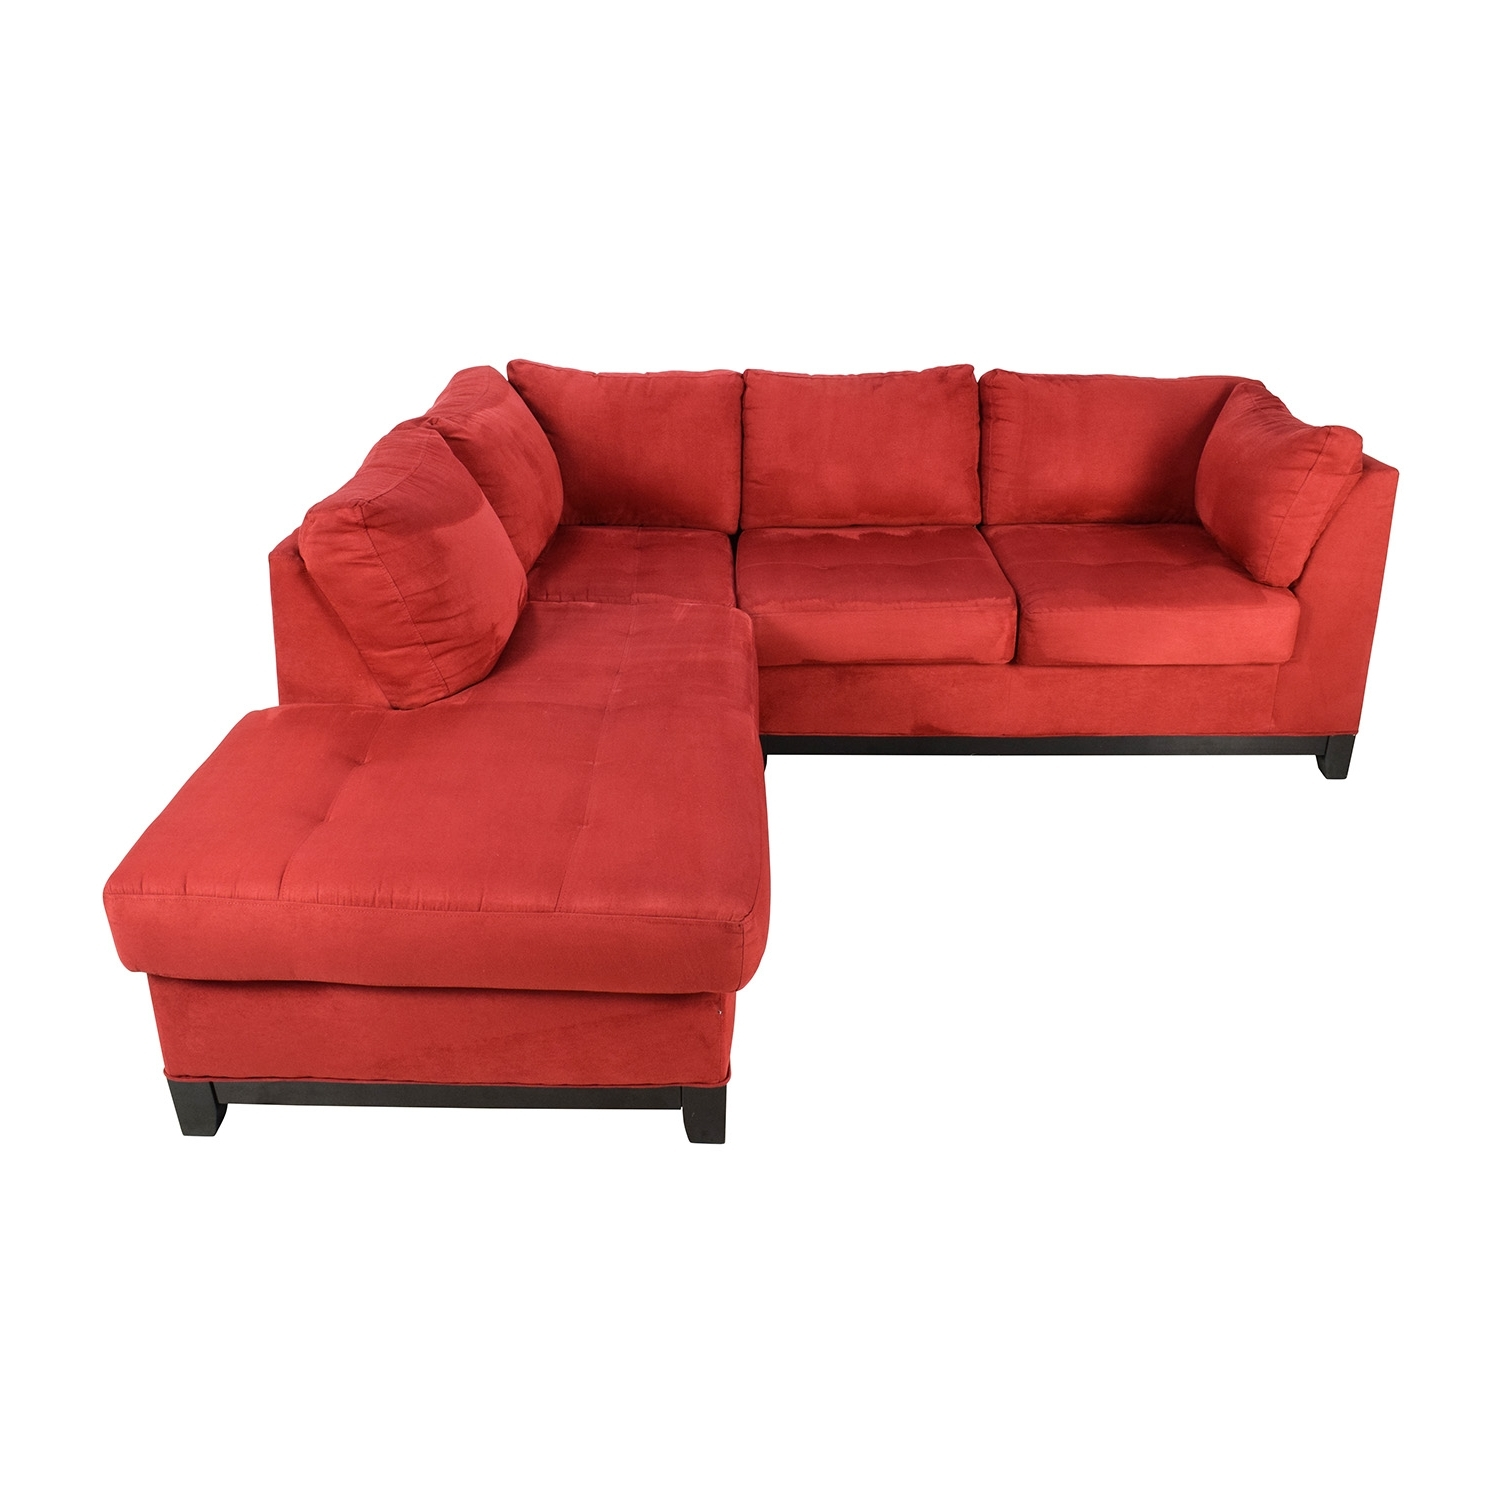 [%67% Off – Raymour And Flanigan Raymour & Flanigan Zella Red With Regard To Well Known Sectional Sofas At Raymour And Flanigan|sectional Sofas At Raymour And Flanigan In Widely Used 67% Off – Raymour And Flanigan Raymour & Flanigan Zella Red|widely Used Sectional Sofas At Raymour And Flanigan For 67% Off – Raymour And Flanigan Raymour & Flanigan Zella Red|most Up To Date 67% Off – Raymour And Flanigan Raymour & Flanigan Zella Red Inside Sectional Sofas At Raymour And Flanigan%] (View 2 of 20)